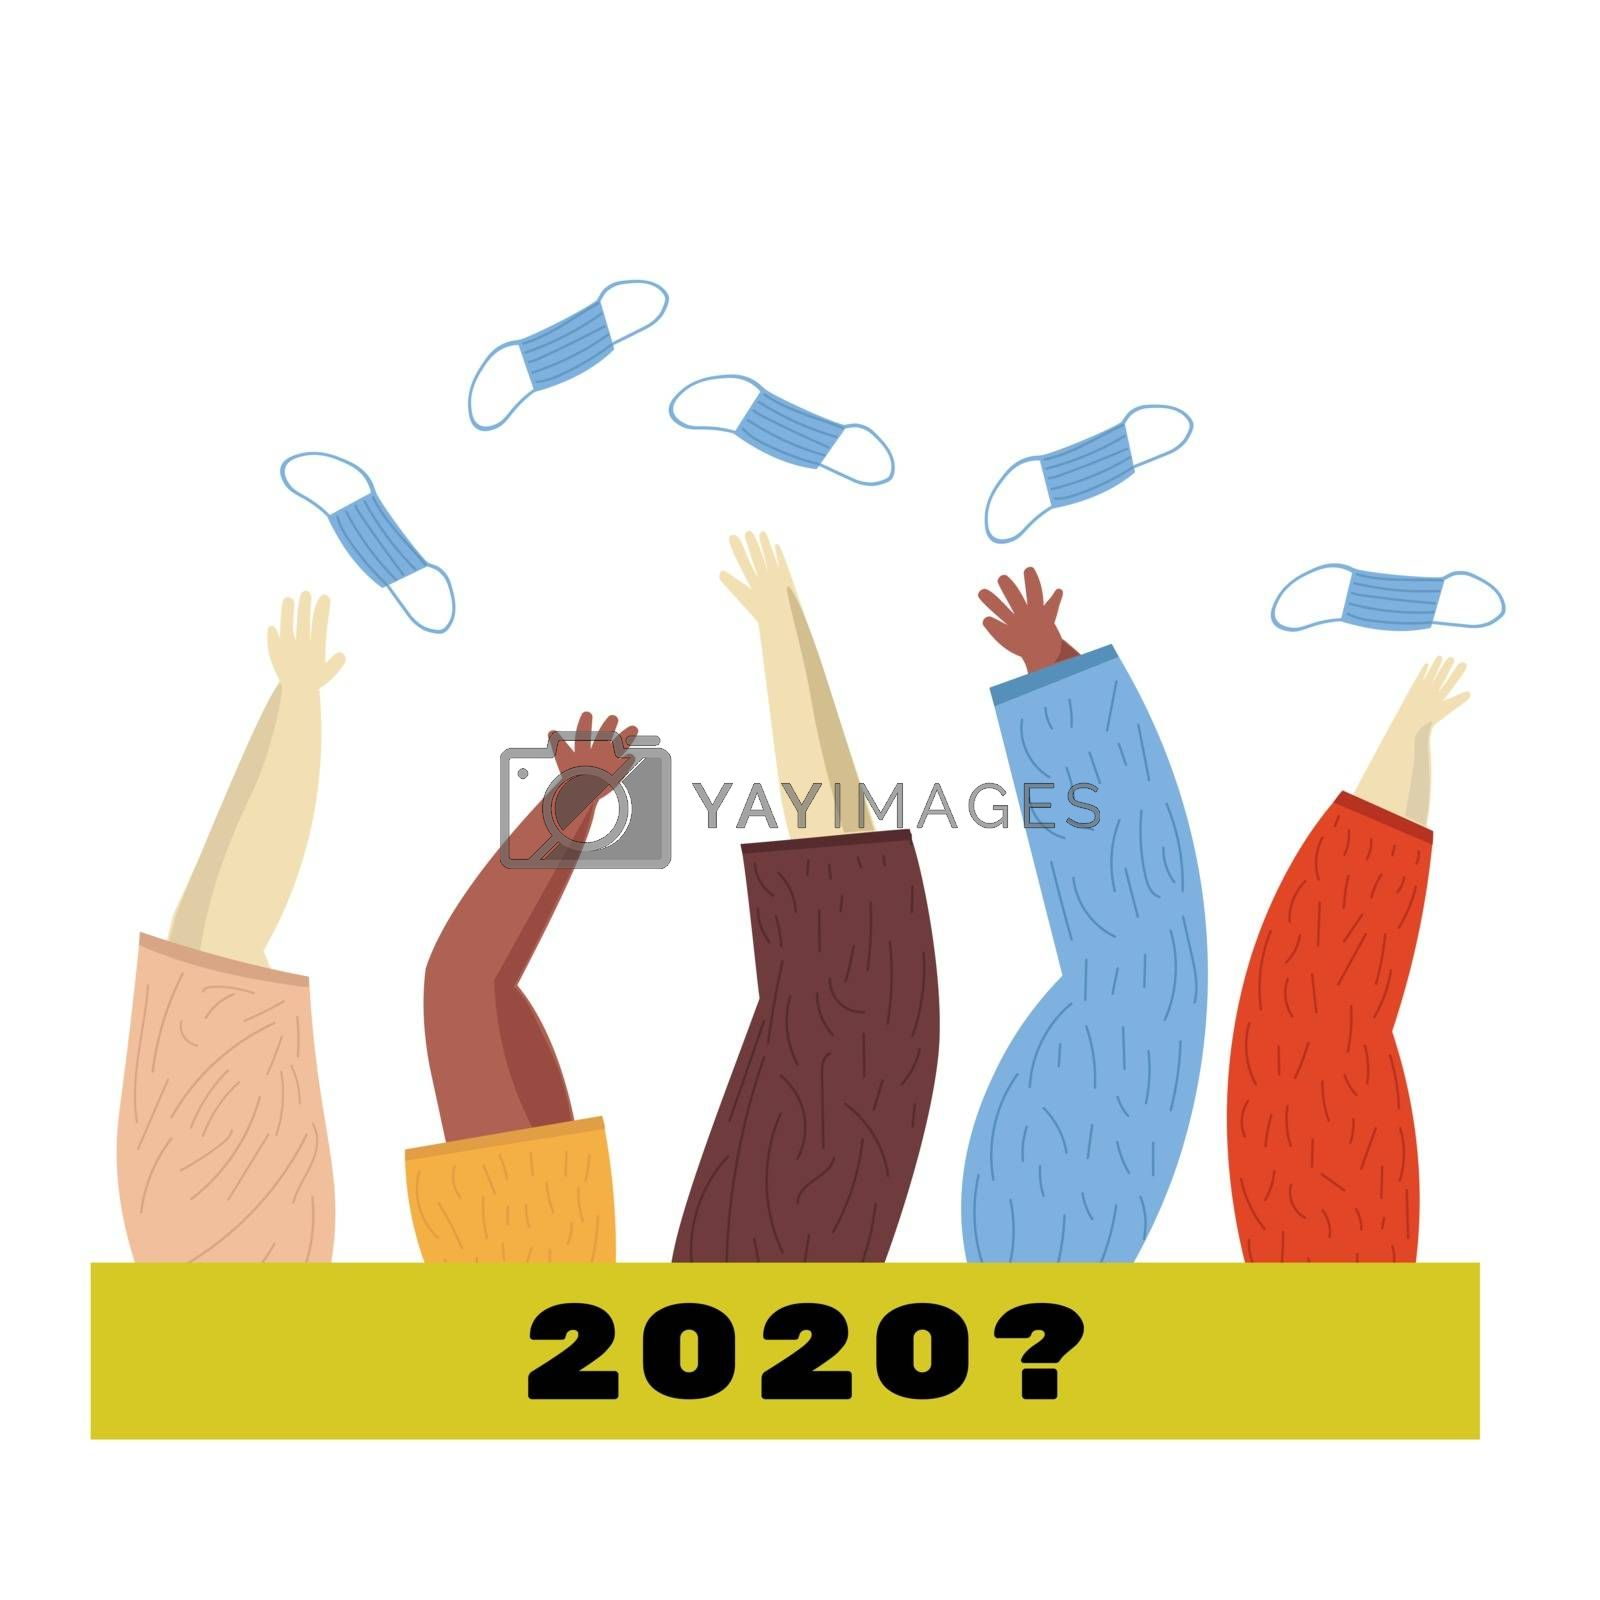 End of the coronavirus pandemic, People raise their hands and throw masks. The concept of completing quarantine and isolation from coronavirus. 2020 in question.